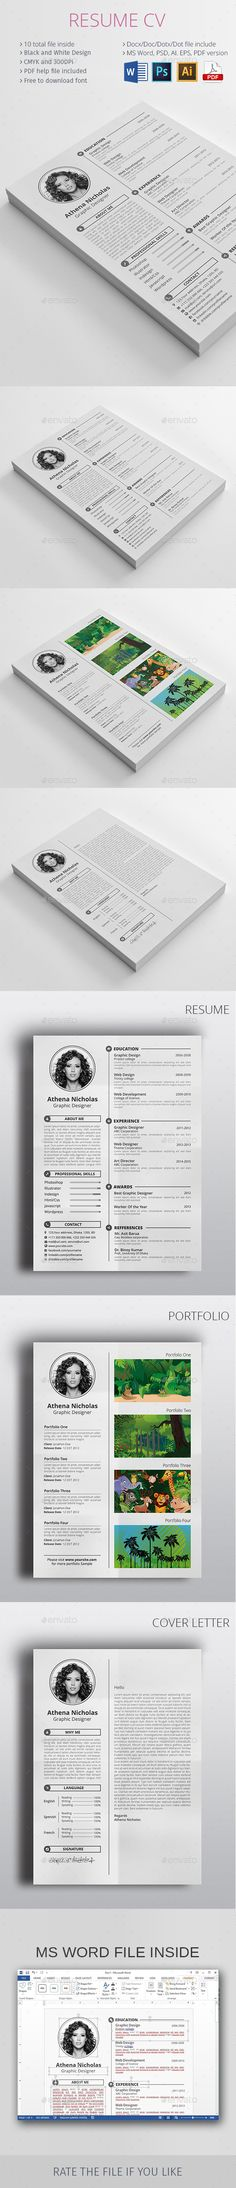 This premium Resume CV belongs MS Word, AI, EPS, PSD, PDF versions. This template is 100% customizable and ready to print